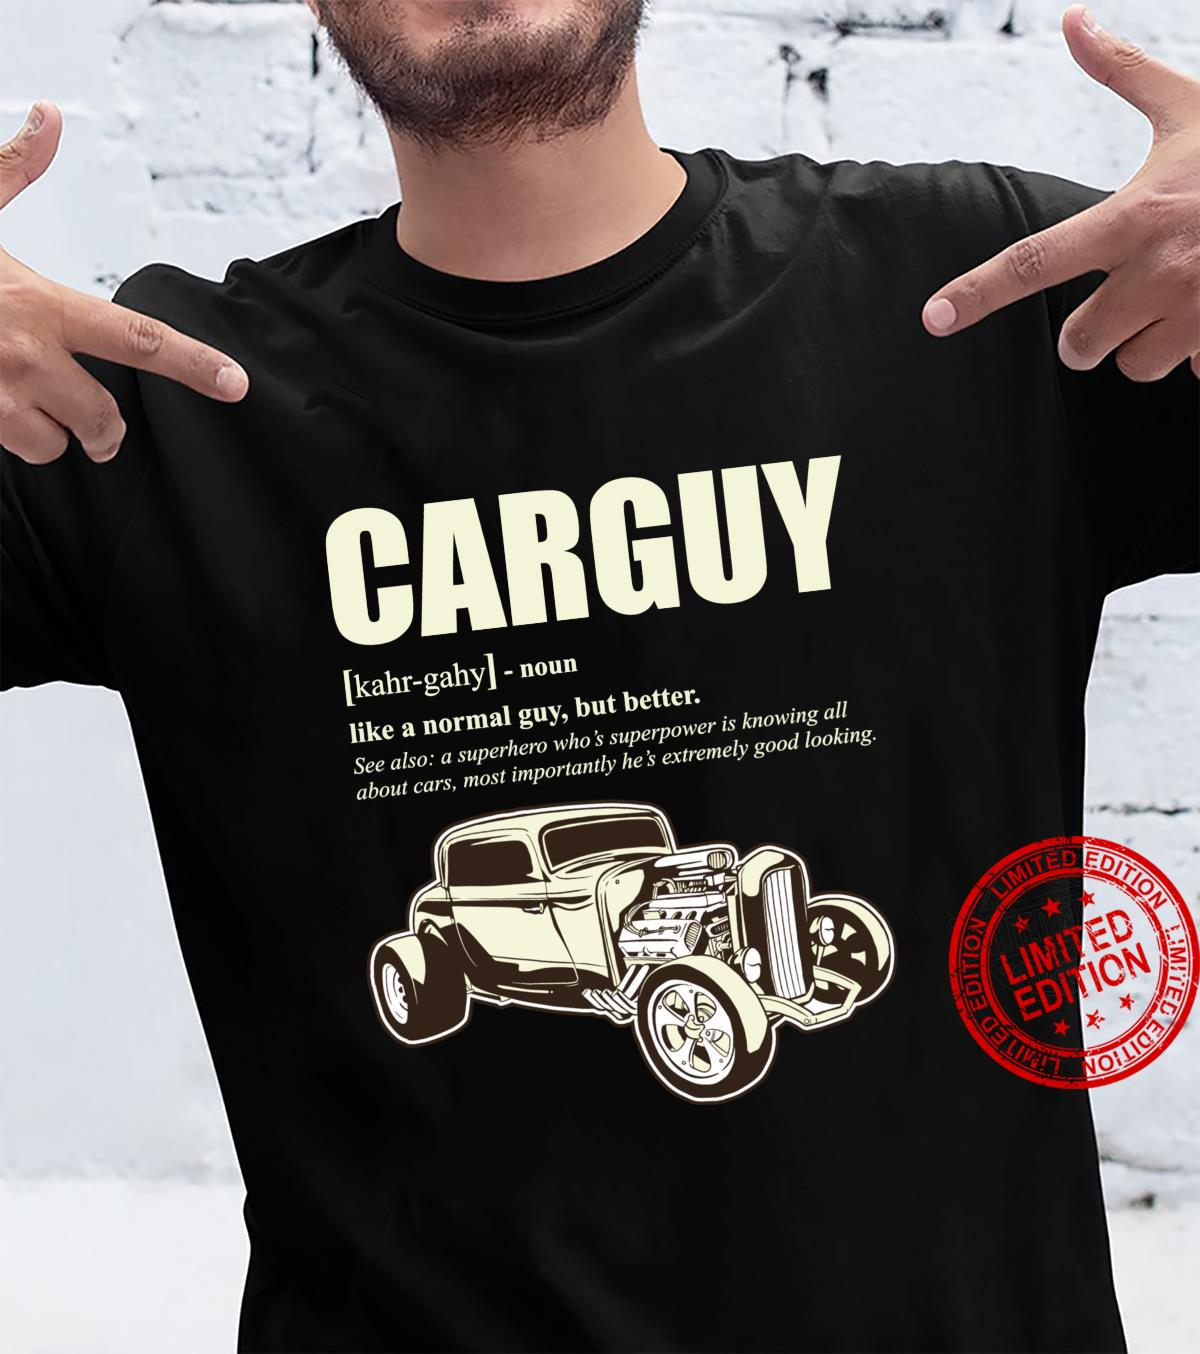 Funny Car Guy Design With Definition Of A CARGUY Shirt